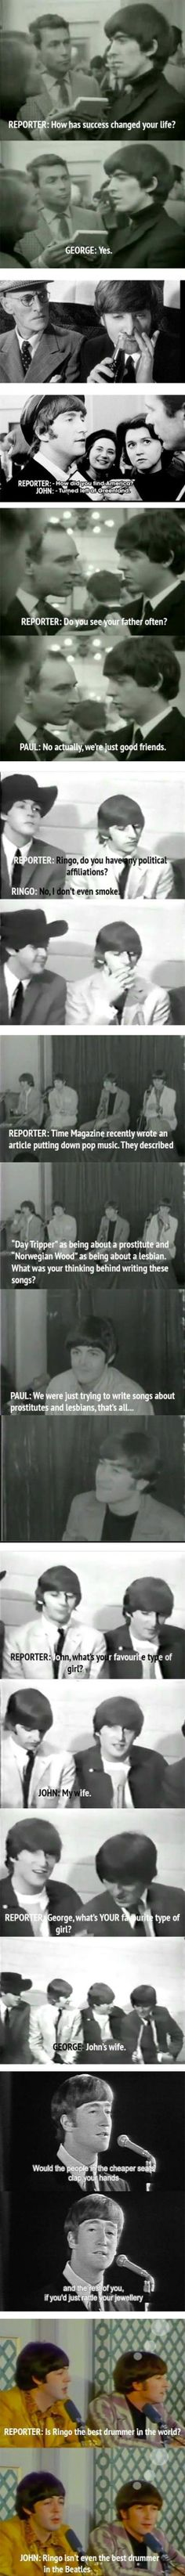 Snarky Beatles interviews, the last one is the best one bahahahaha The  Beatles, Beatles